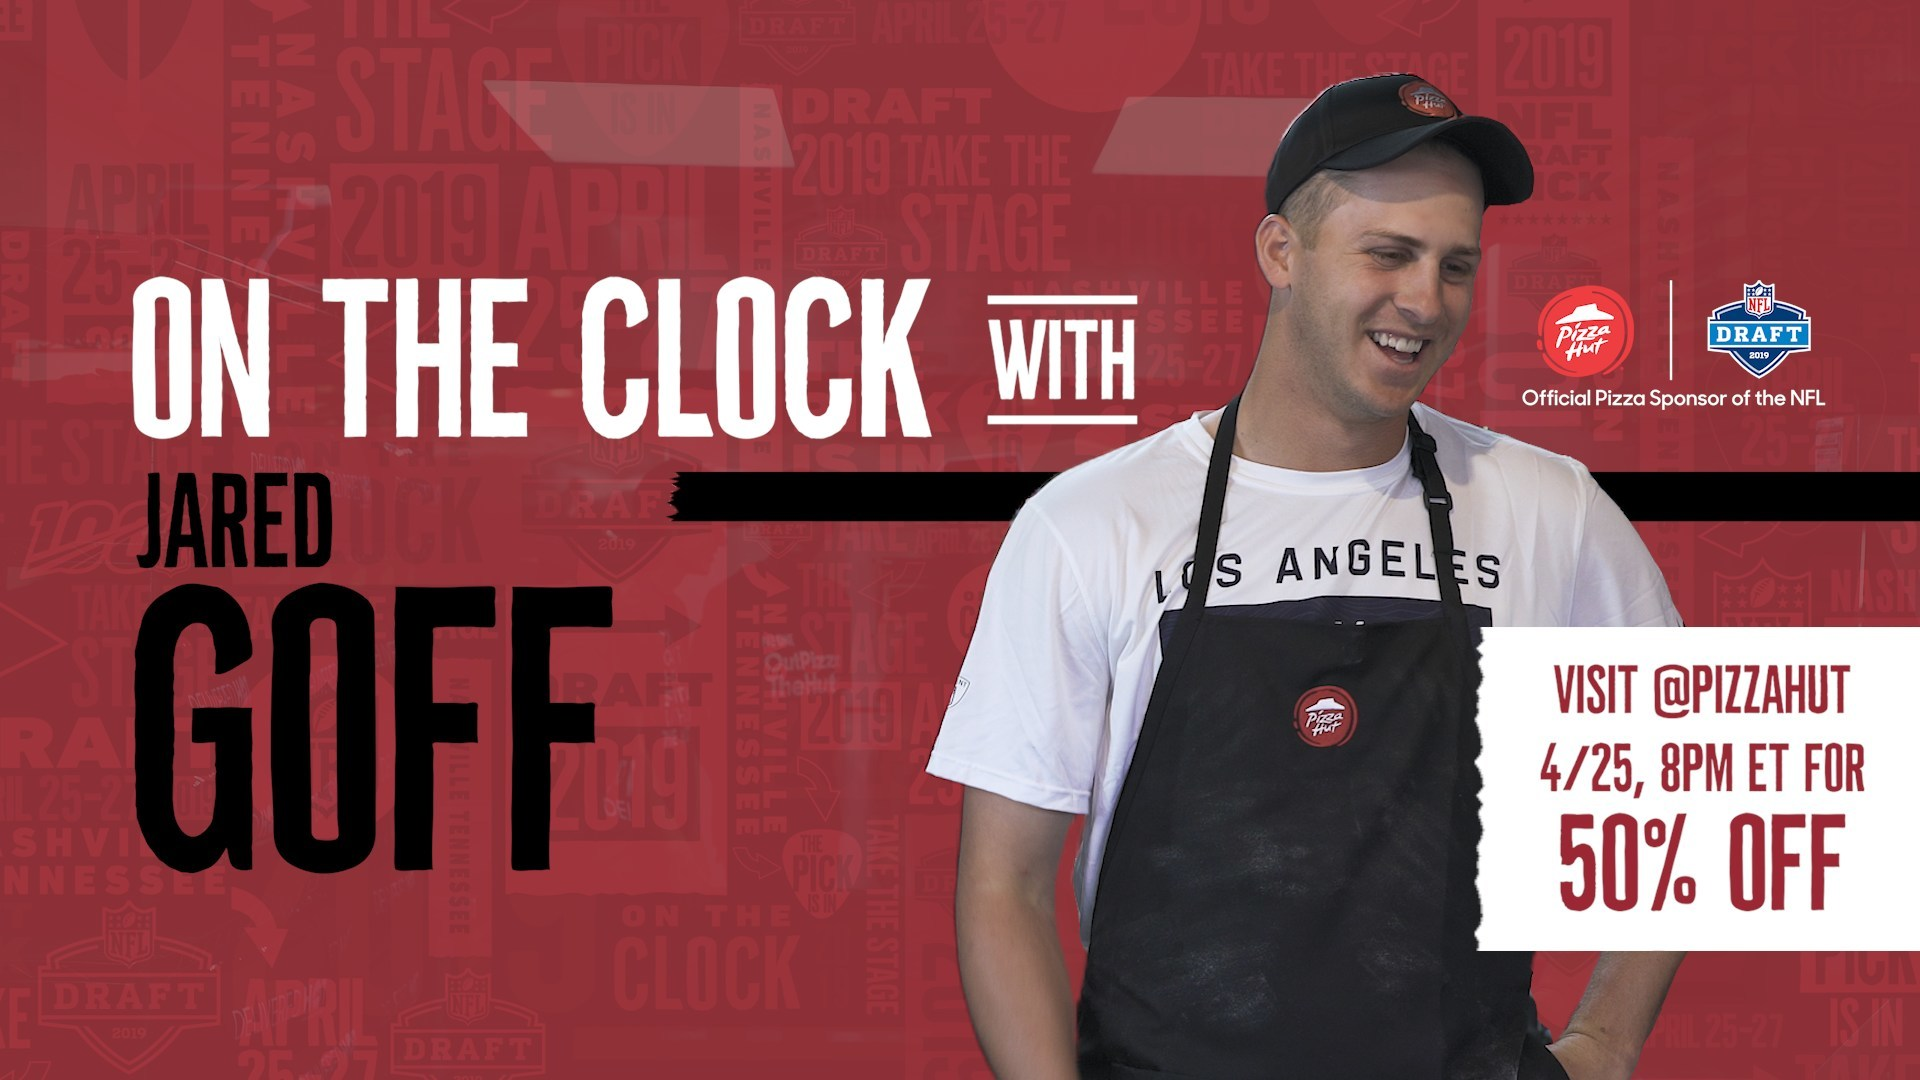 e339d46d006 The Pick Is In  Pizza Hut Puts Fans On The Clock During 2019 NFL Draft To  Celebrate Its Second Year As The Official Pizza Sponsor Of The NFL